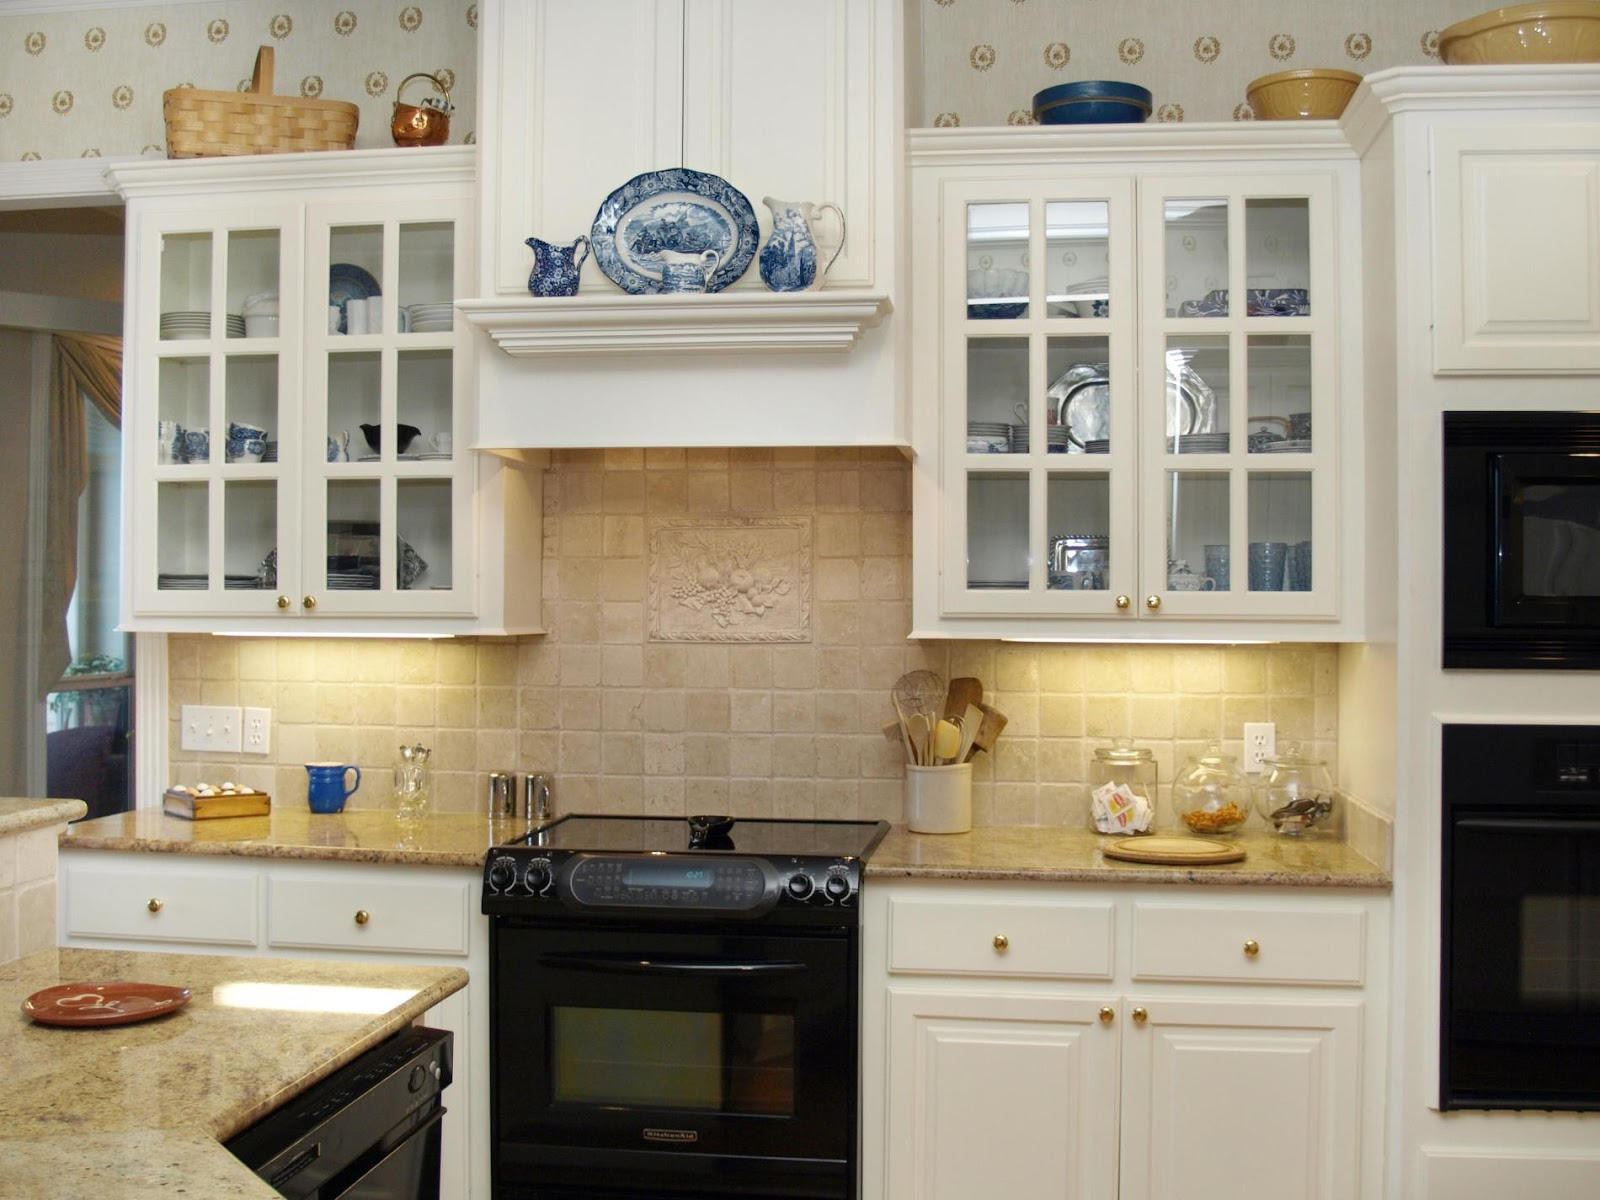 Kitchen shelves decoration dream house experience for House decoration tips